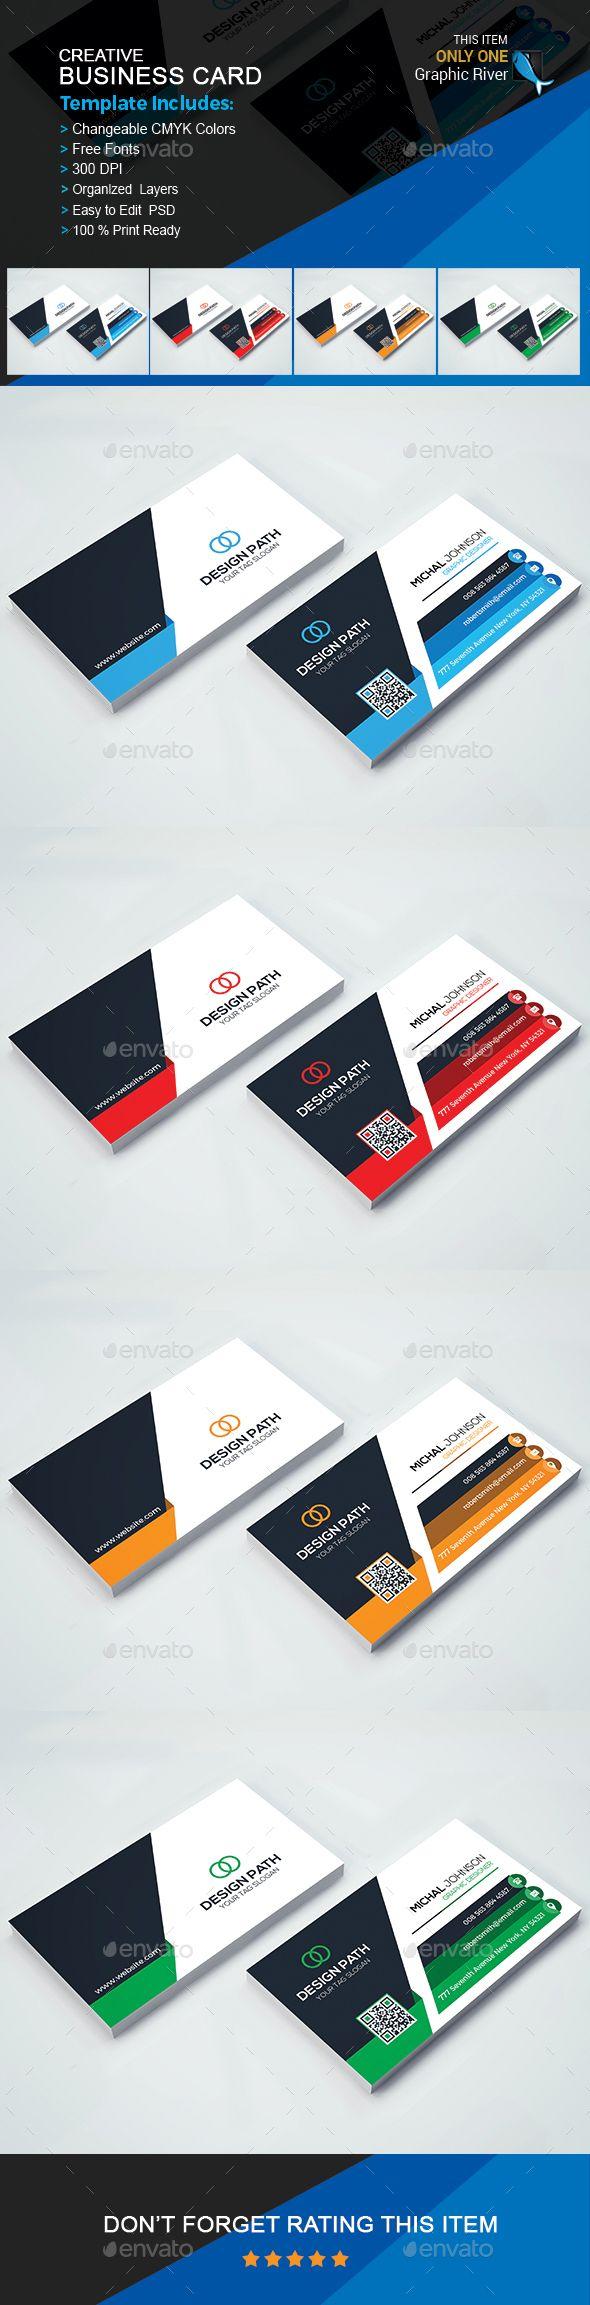 Corporate business card corporate business print templates and corporate business card business cards print templates download here https cheaphphosting Image collections